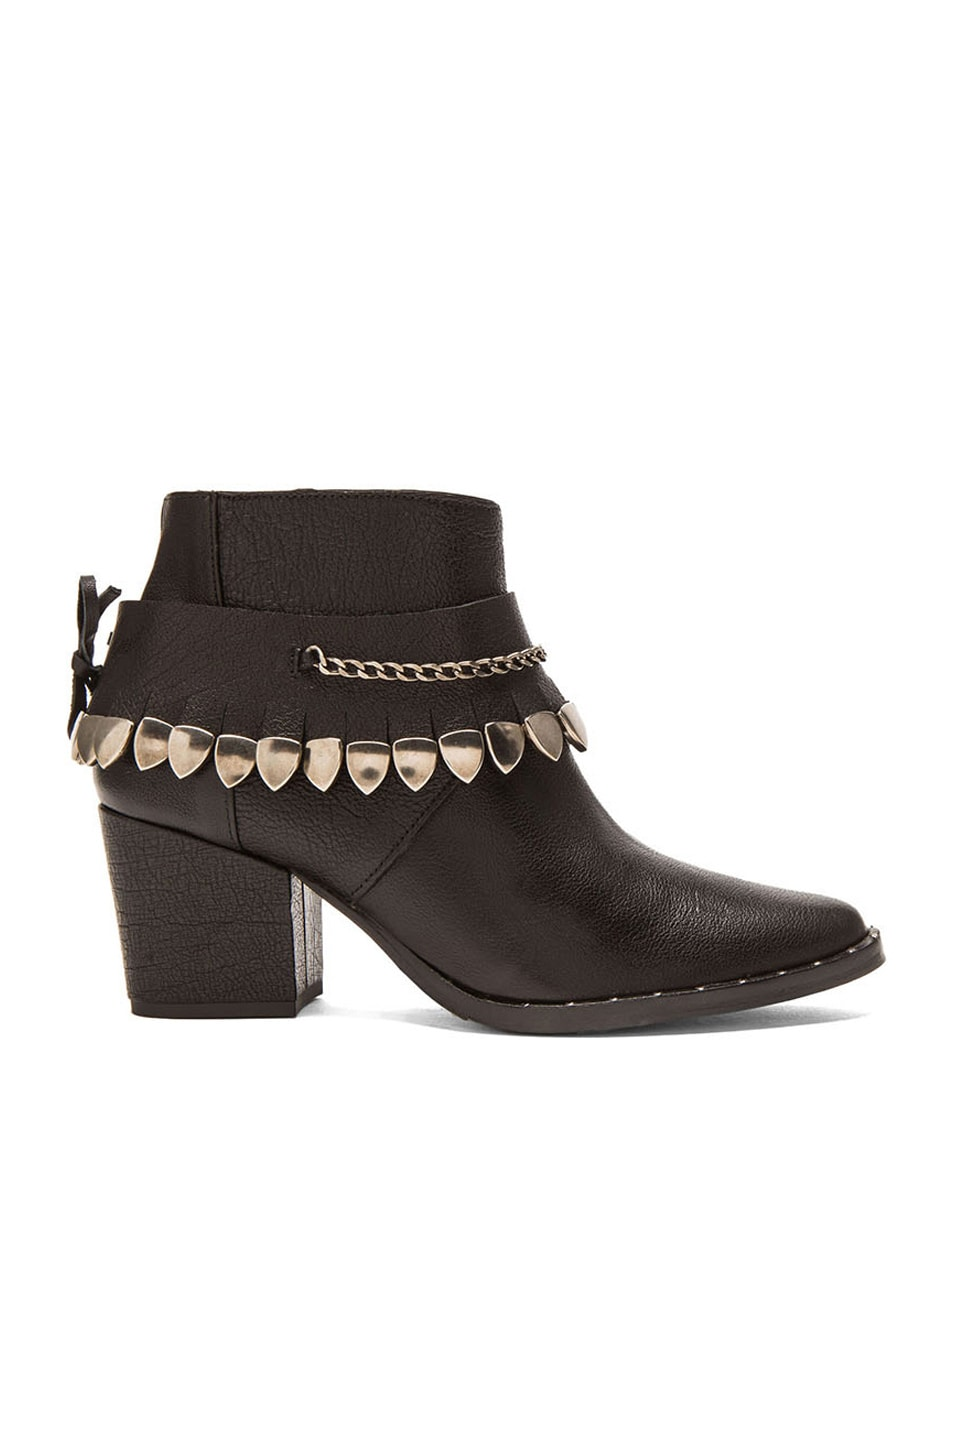 Image 1 of Freda Salvador Comet Leather Booties in Black Vachetta